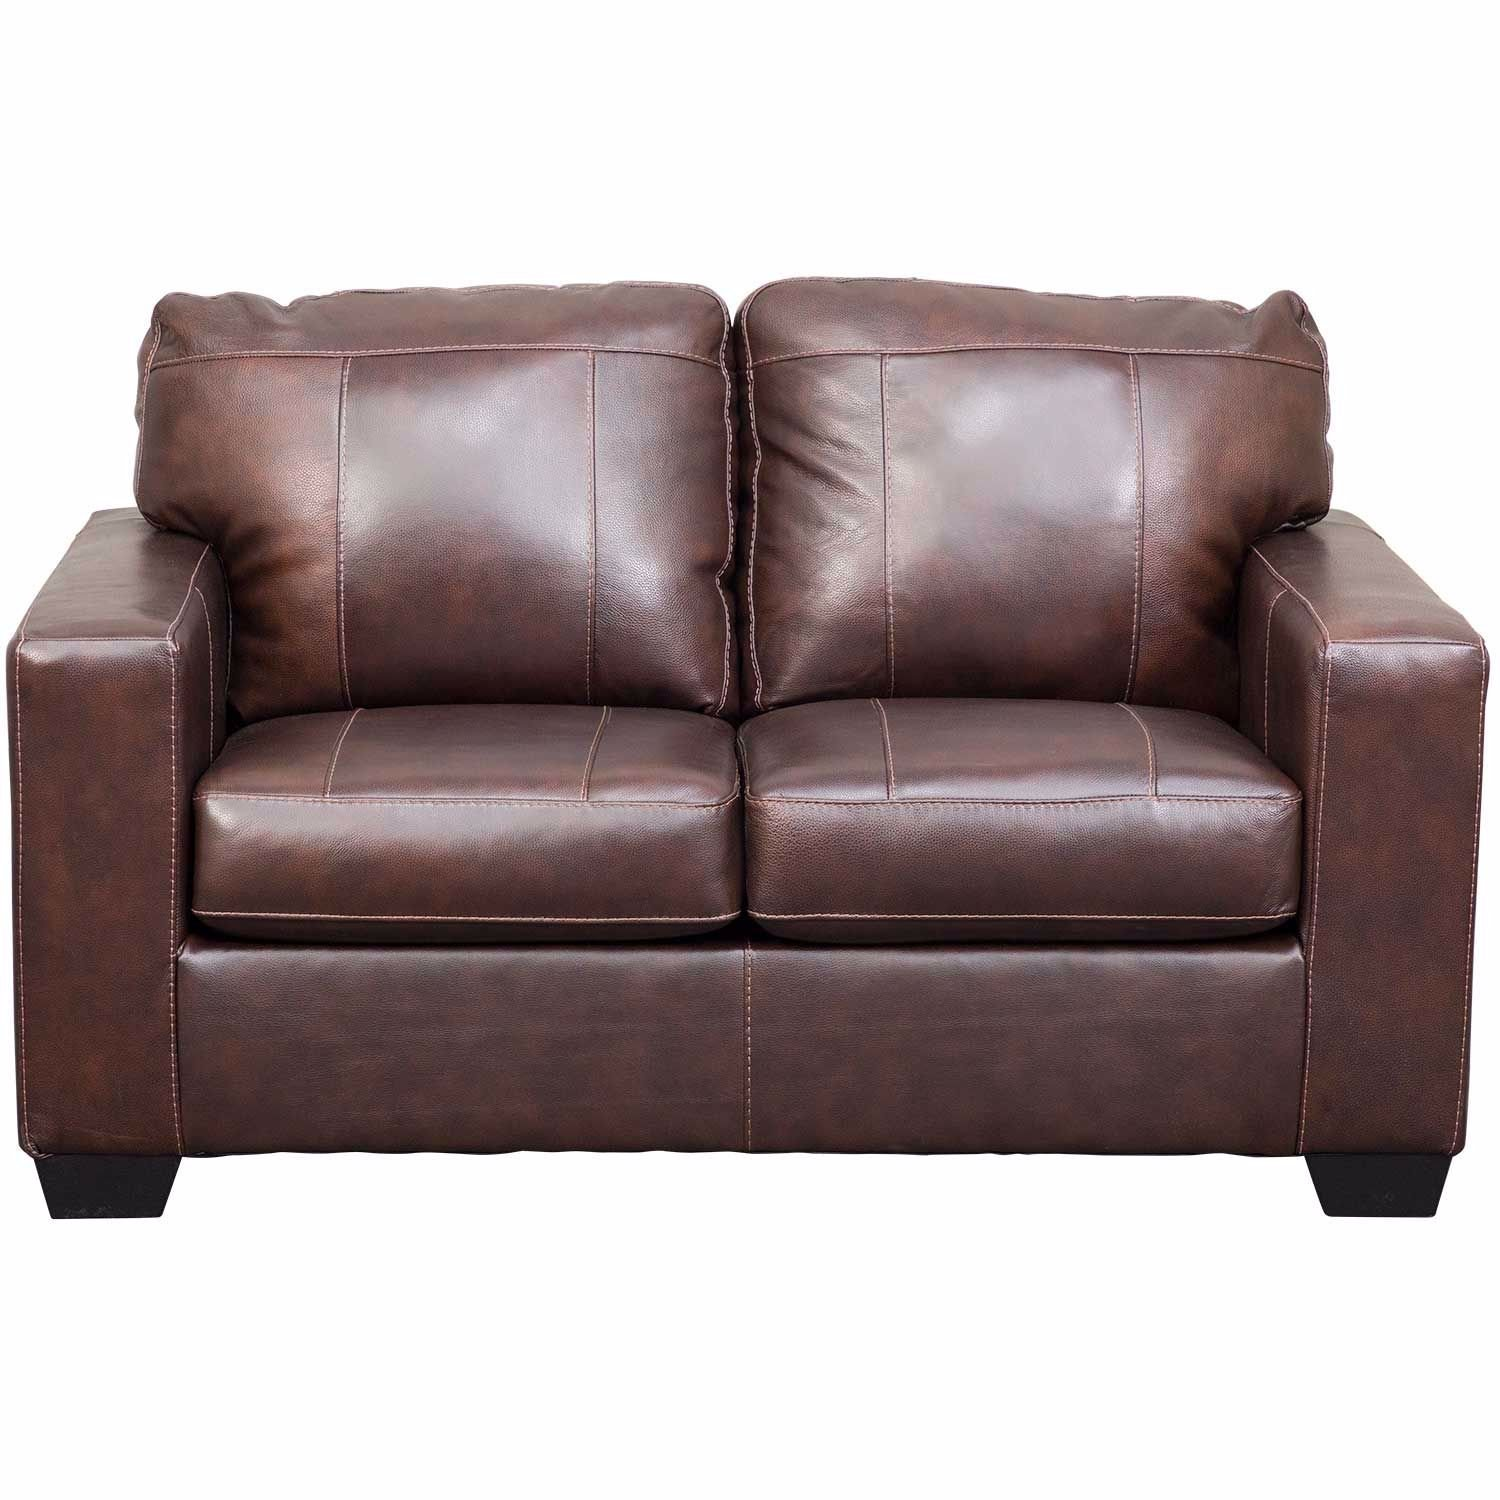 Awe Inspiring Morelos Brown Italian Leather Loveseat Caraccident5 Cool Chair Designs And Ideas Caraccident5Info